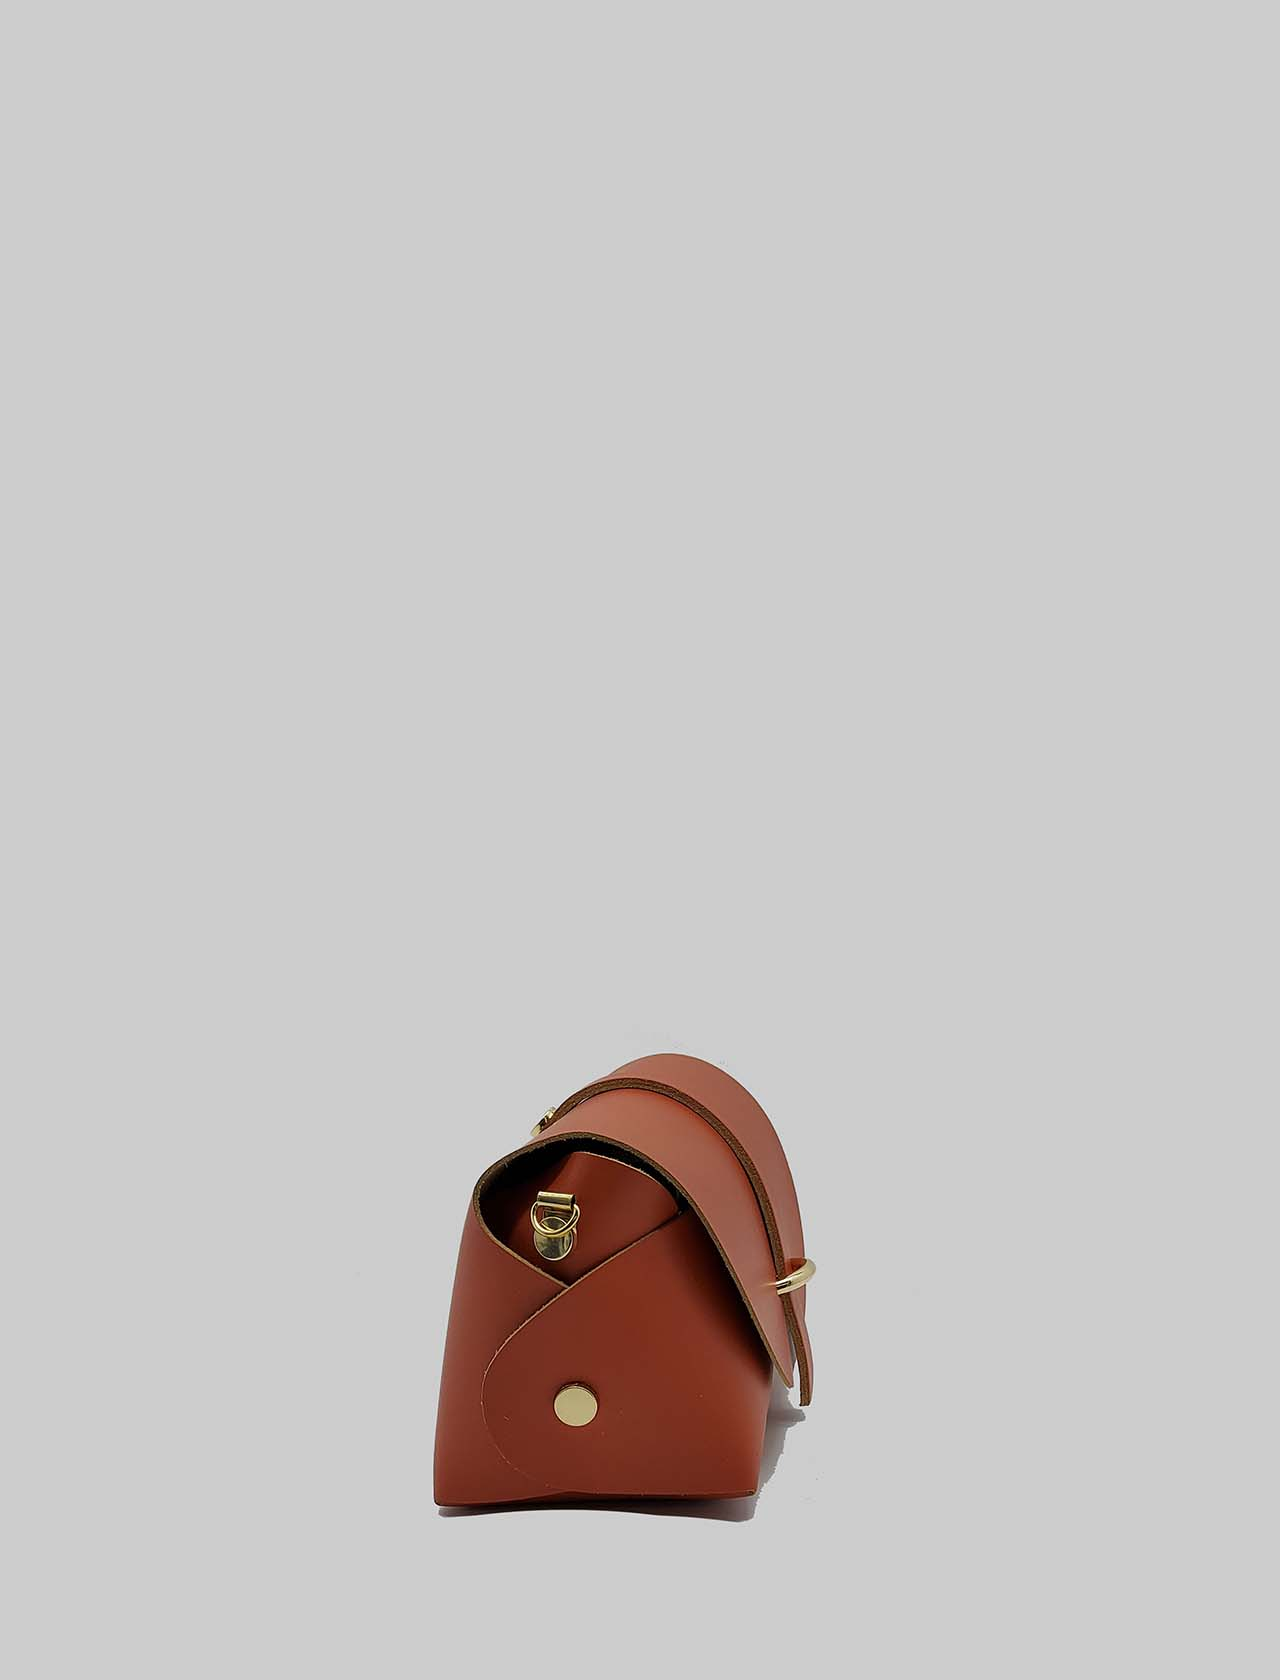 Women's Bags Small Satchel in Coral Leather with Removable Shoulder Strap Spatarella   Bags and backpacks   PE0202020